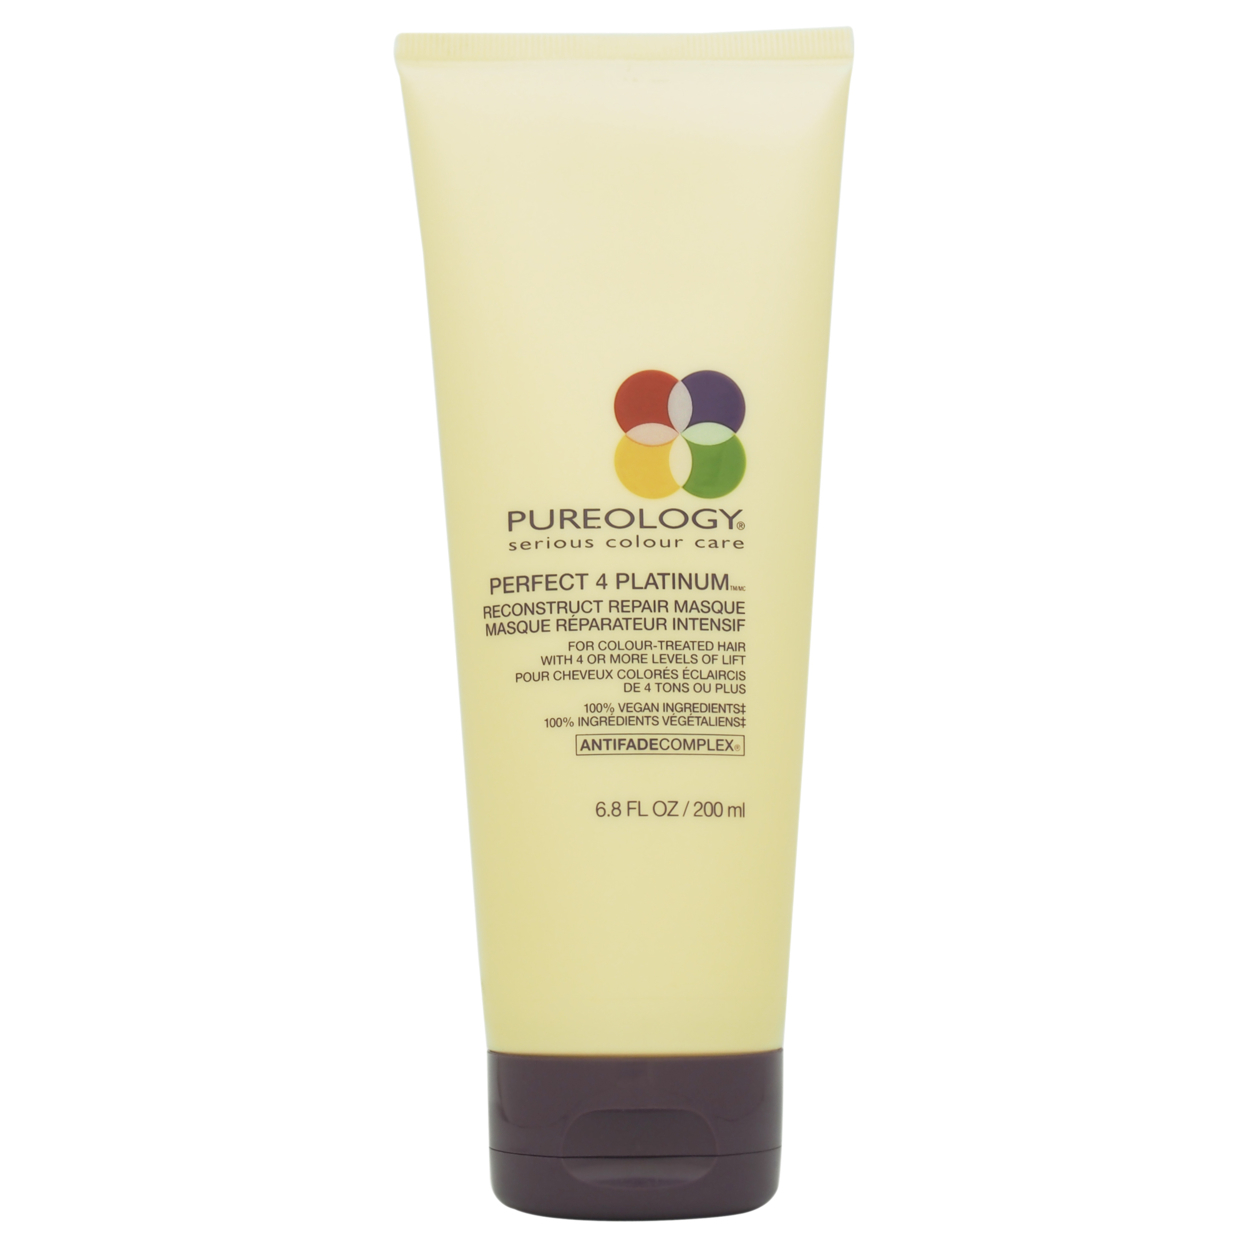 Perfect 4 Platinum Reconstruct Repair Masque by Pureology for Women - 6.8 oz Conditioner 593bc5cb2a00e4326a522e32